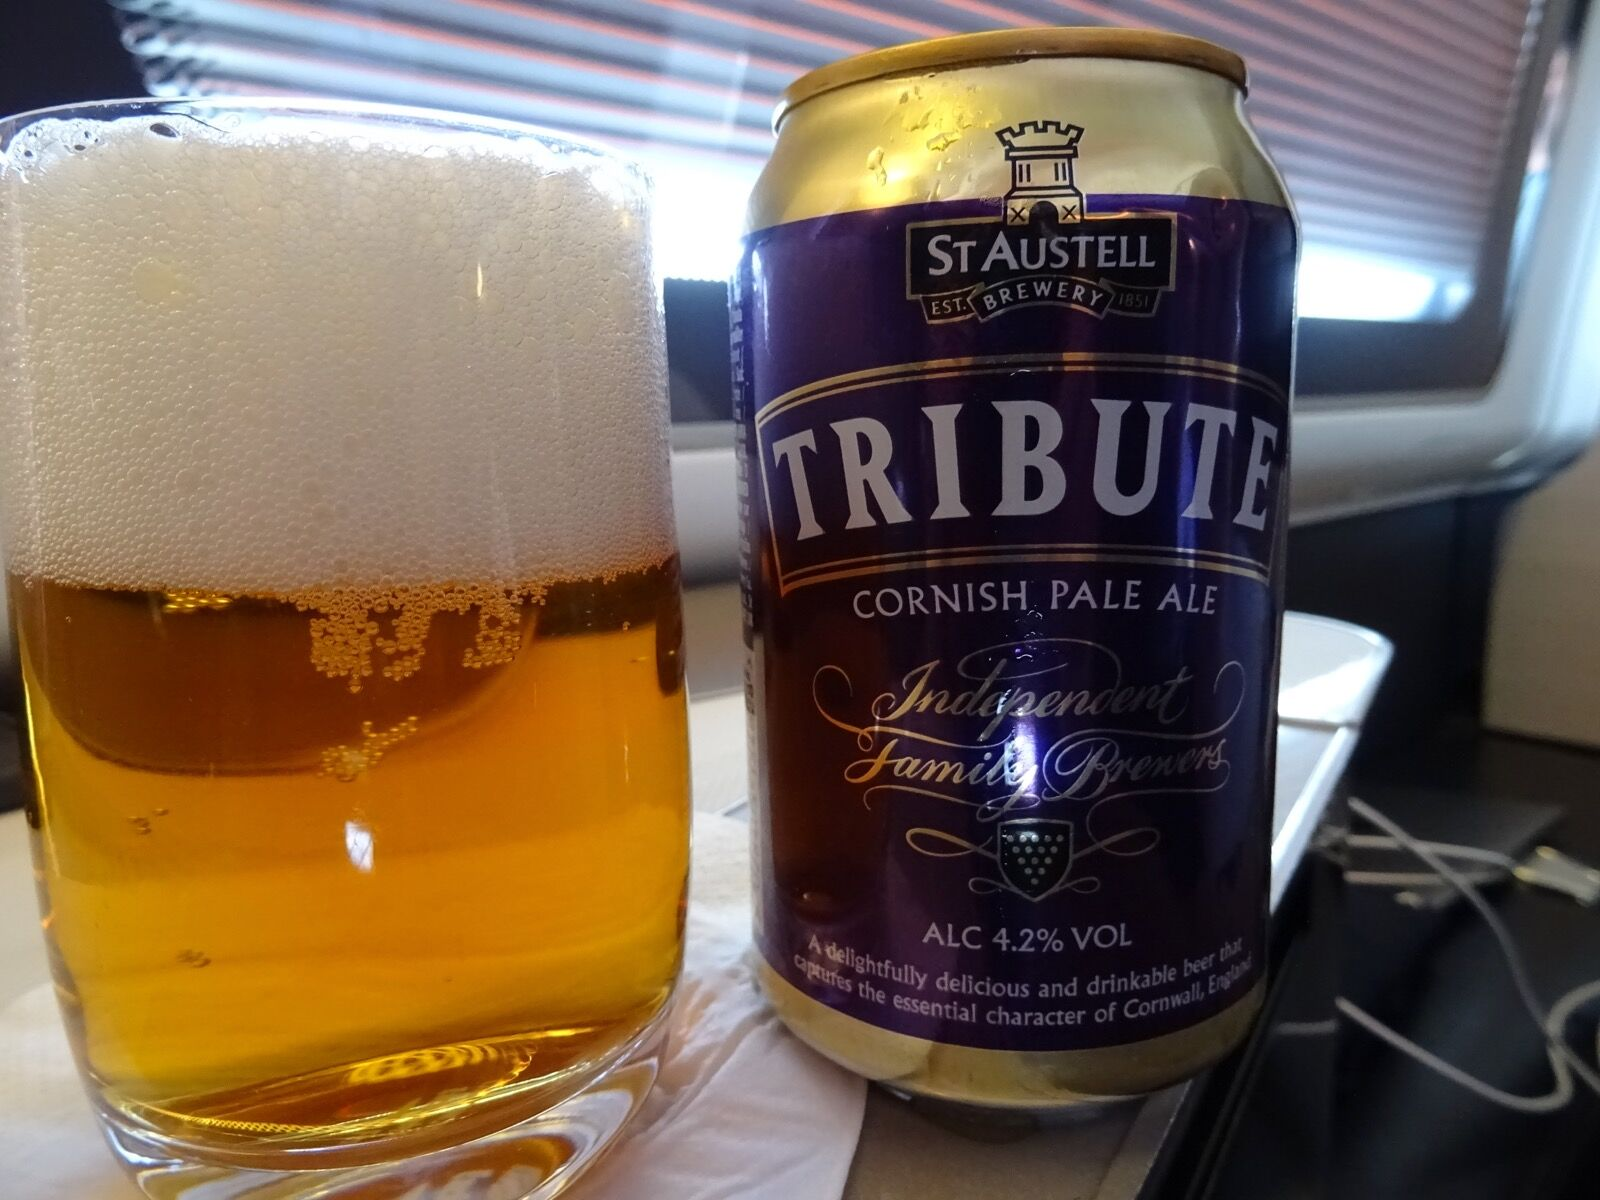 St Austell Beer